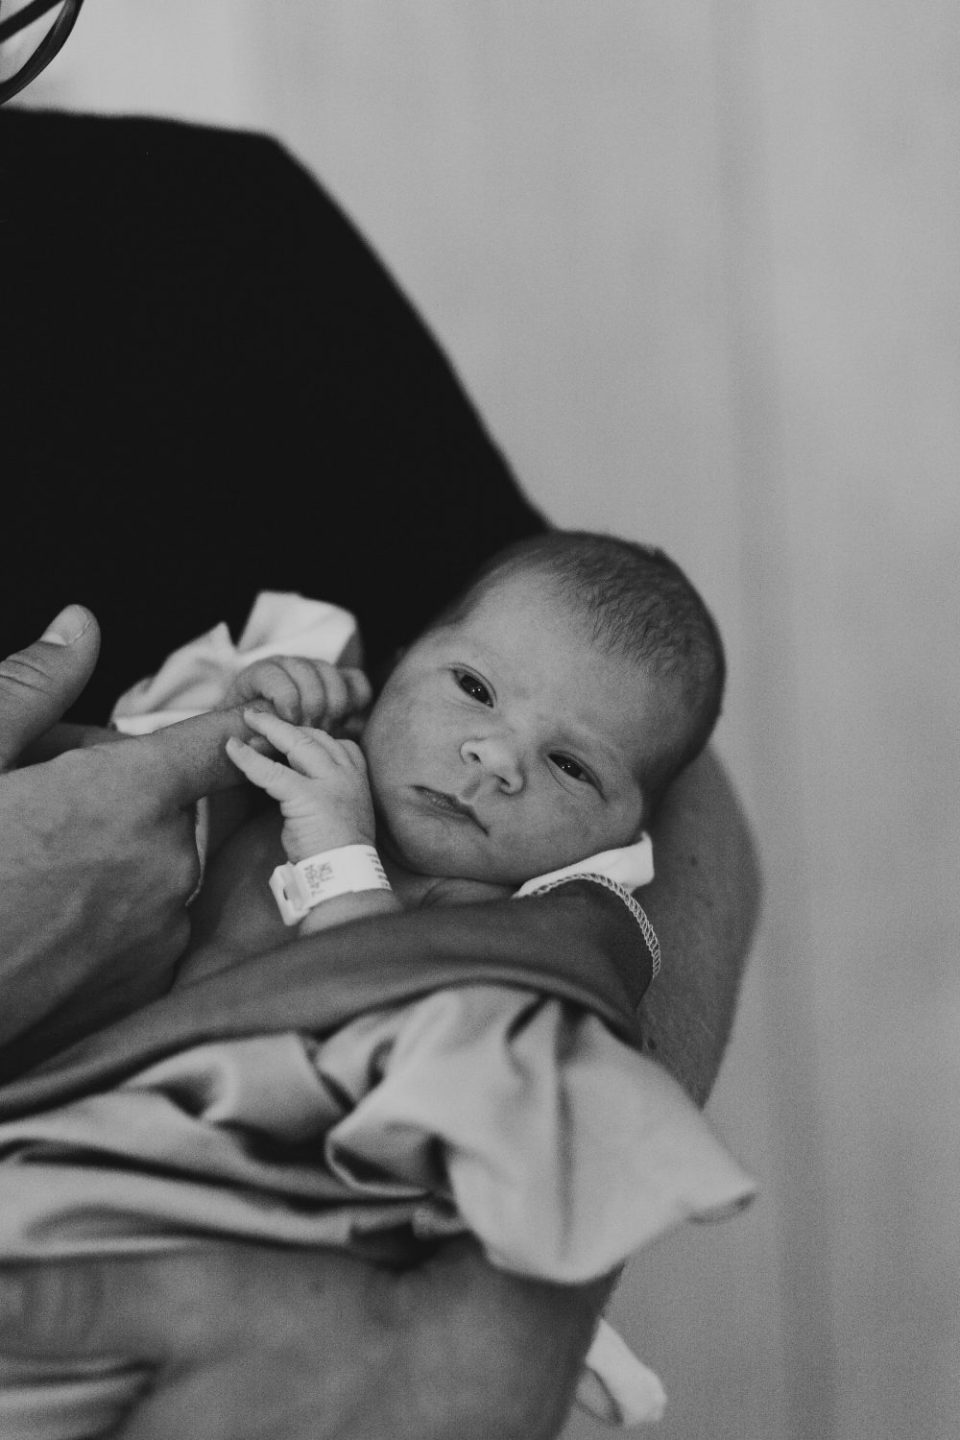 Dad holding newborn baby in birth photography at hospital